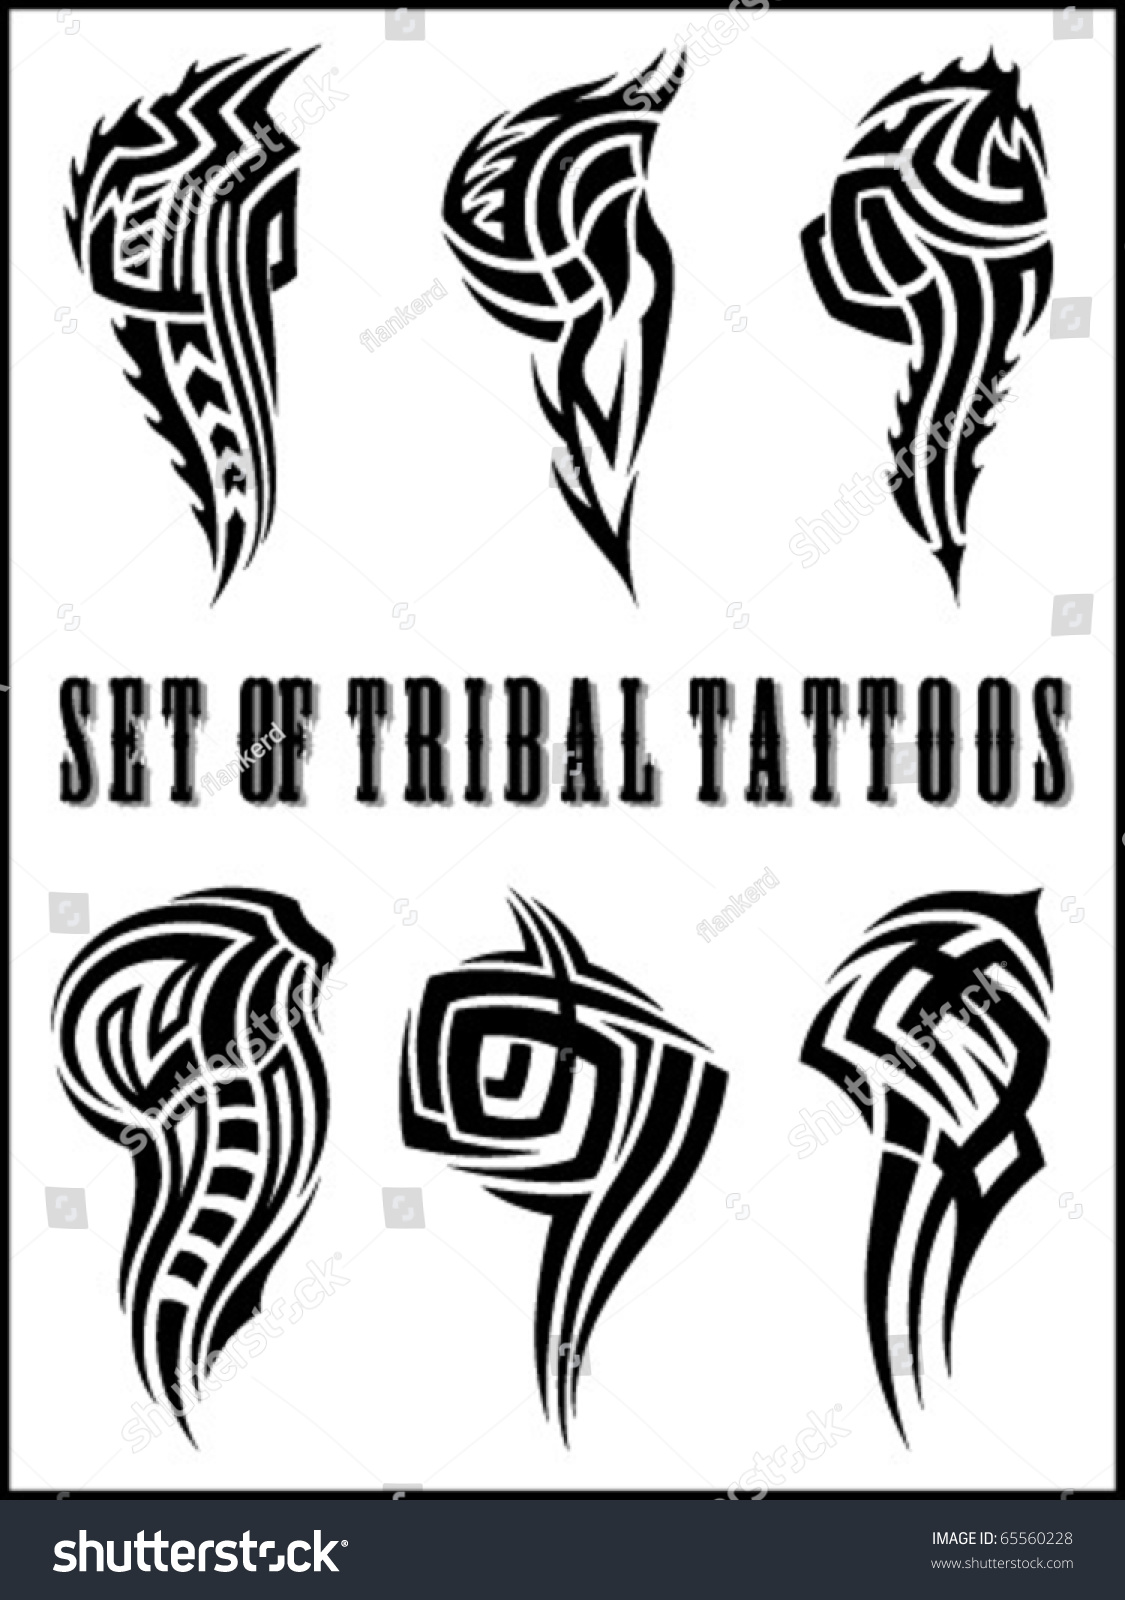 Tribal-Tattoos stock-vector-set-of-tribal-tattoo-including-65560228